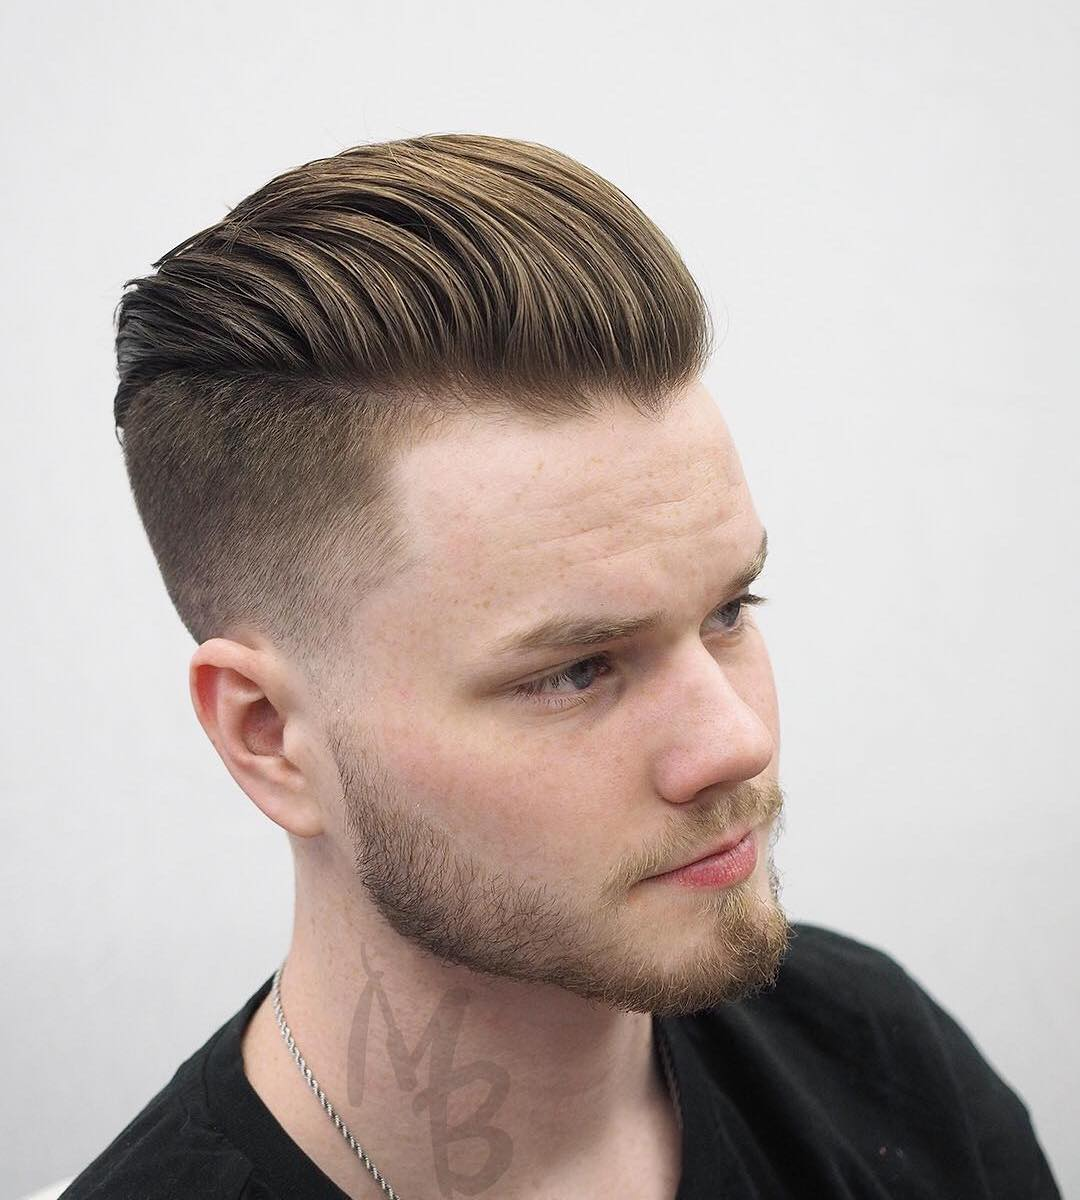 25+ Cool Men\u0027s Haircuts + Men\u0027s Hairstyles For 2018